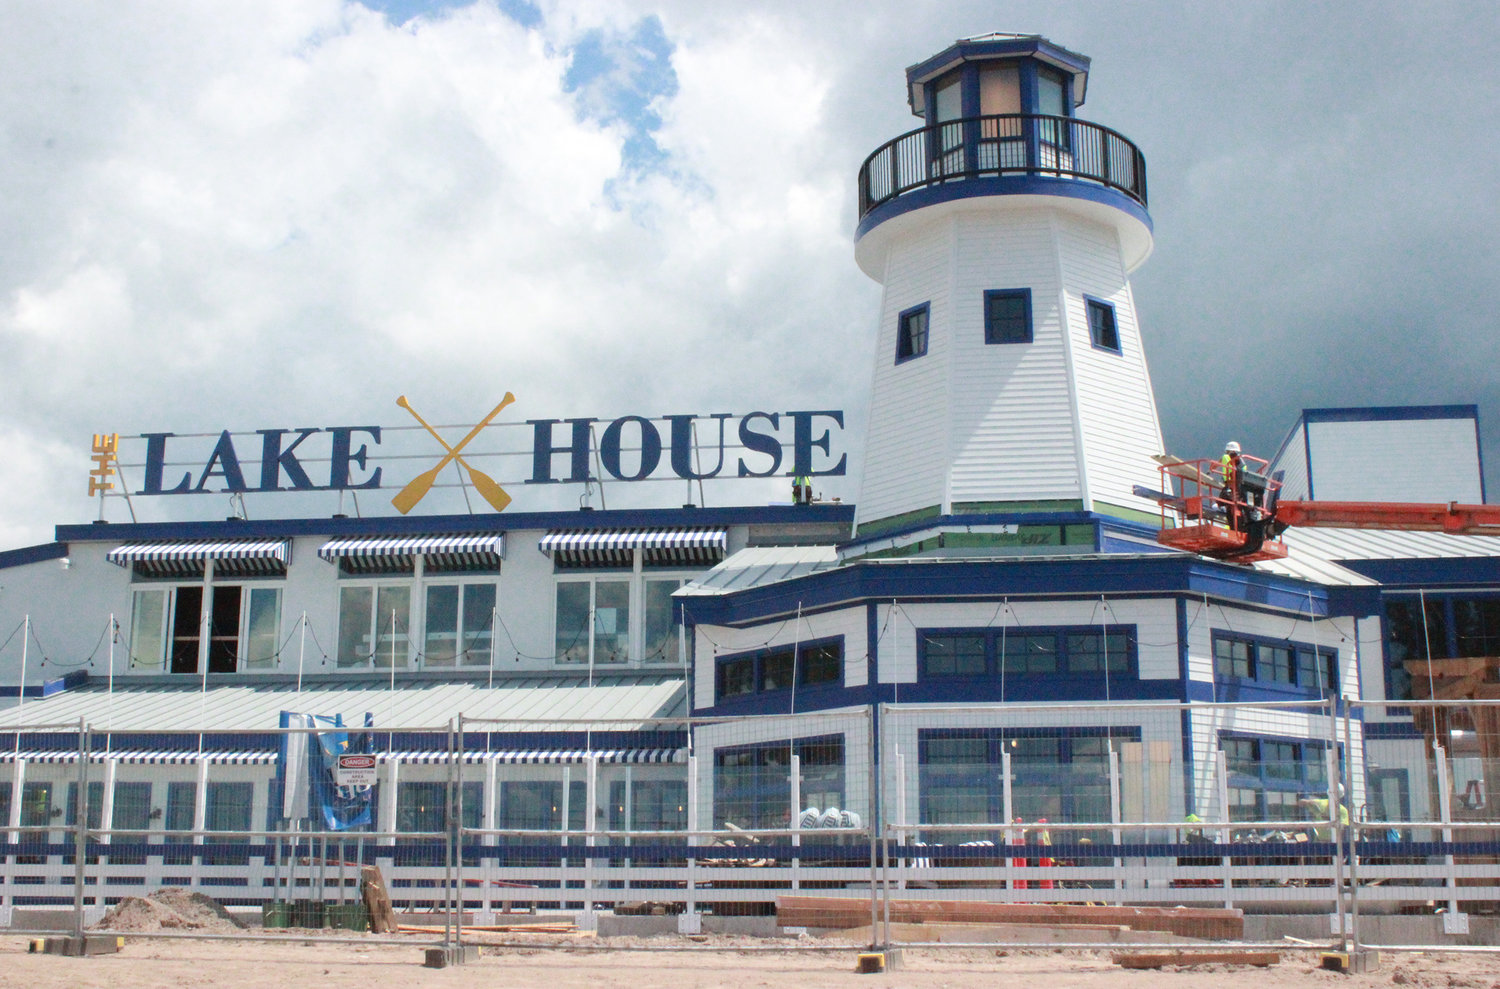 THE LAKE HOUSE — The Lake House's iconic lighthouse overlooks the beach, which is barely a stone's throw away for guests.